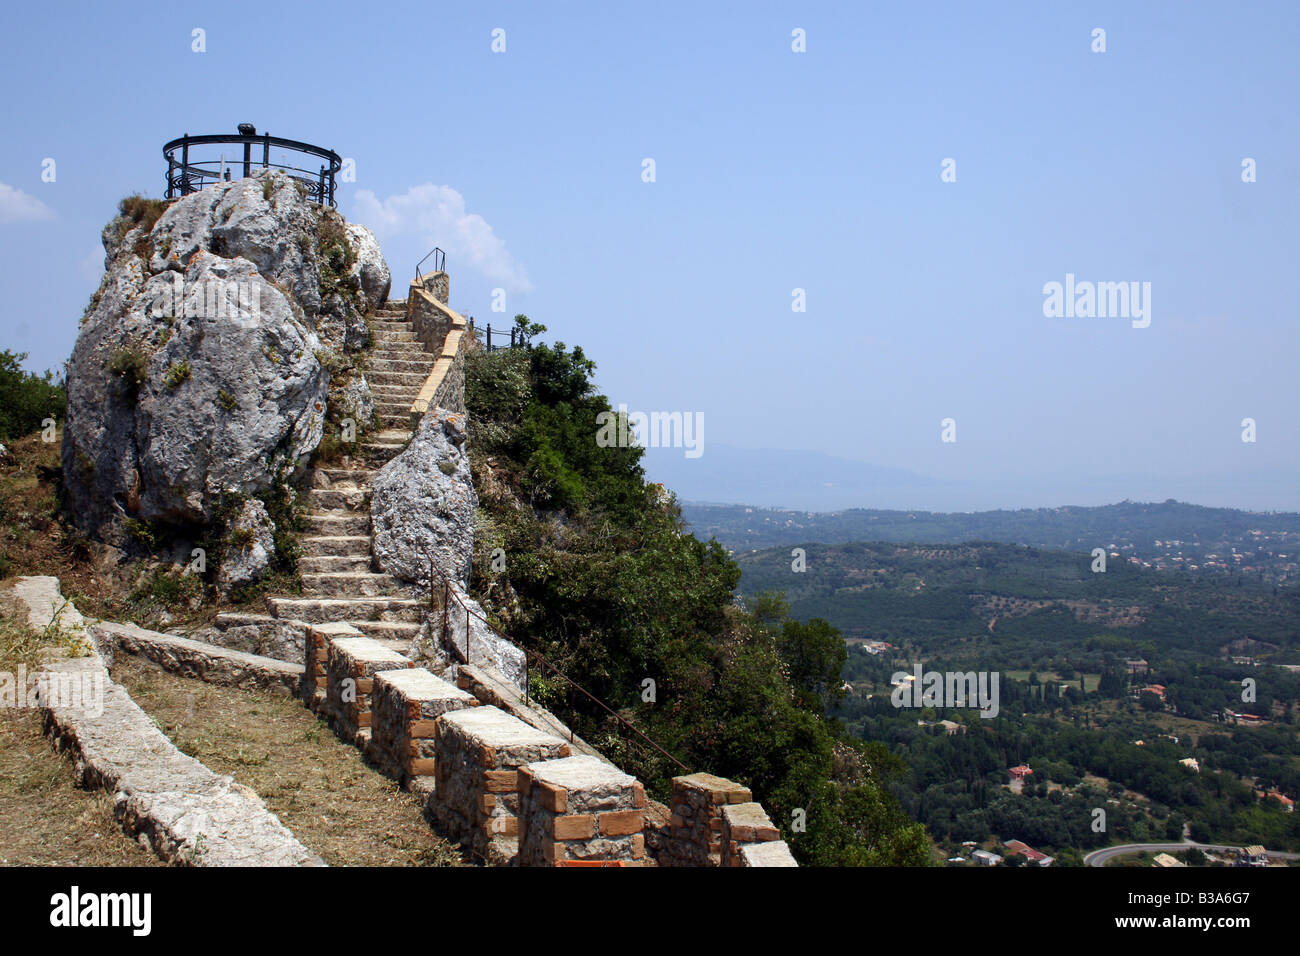 THE KAISERS THRONE AT THE VILLAGE OF PELEKAS ON THE GREEK ...